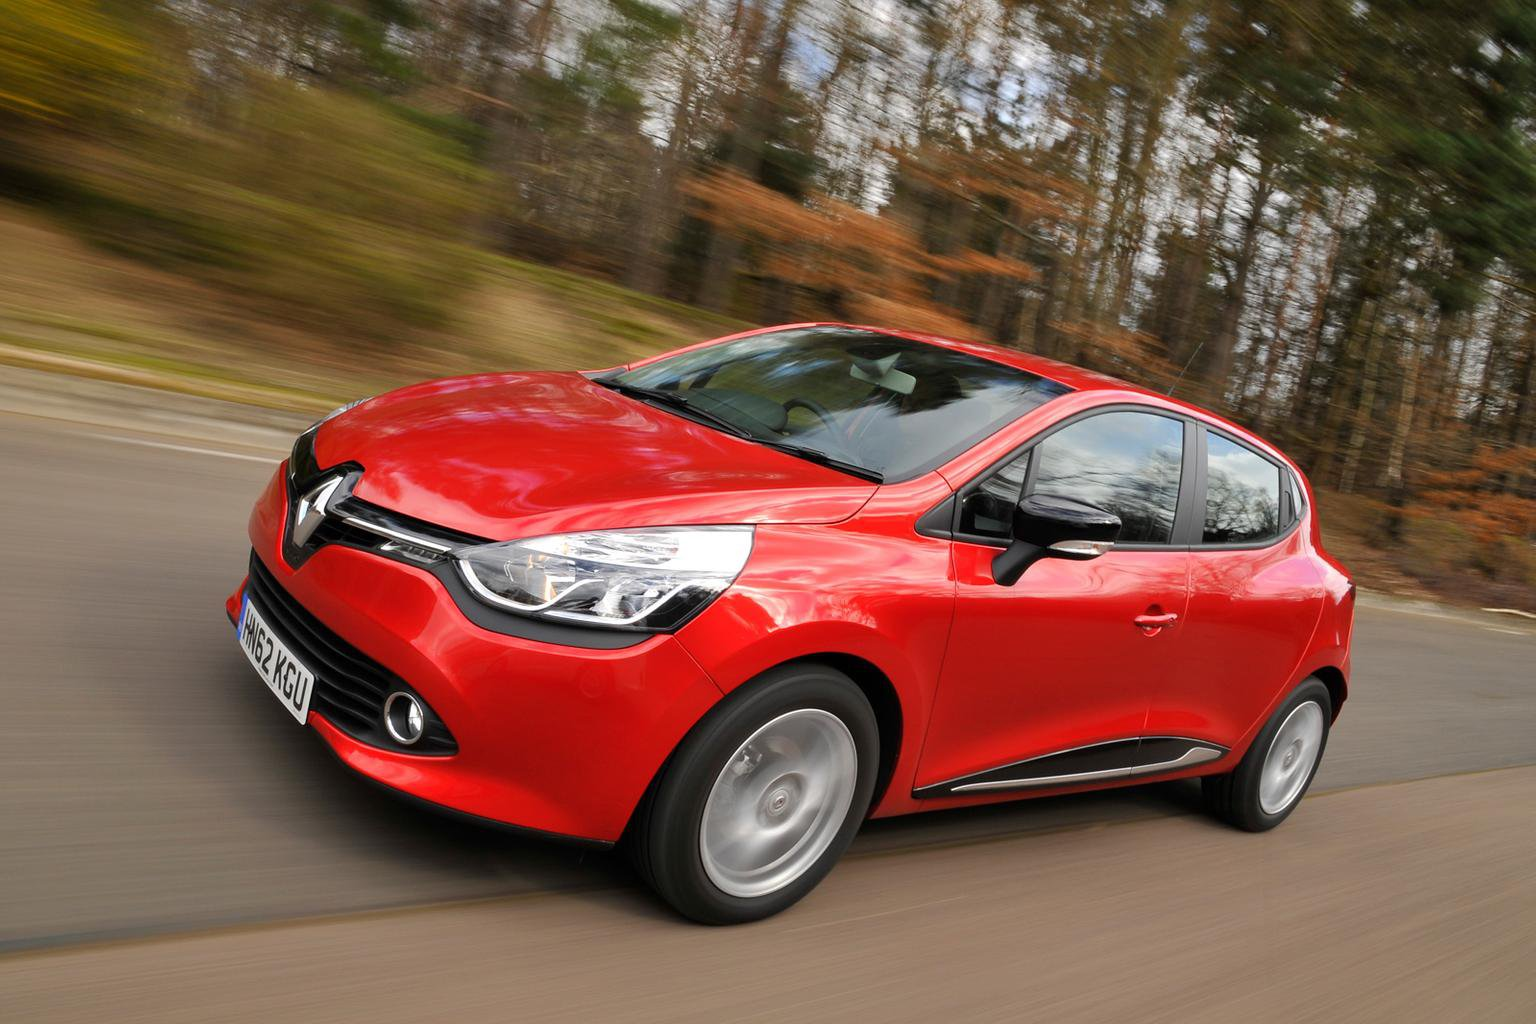 2014 Renault Clio 1.5 dCi Eco review